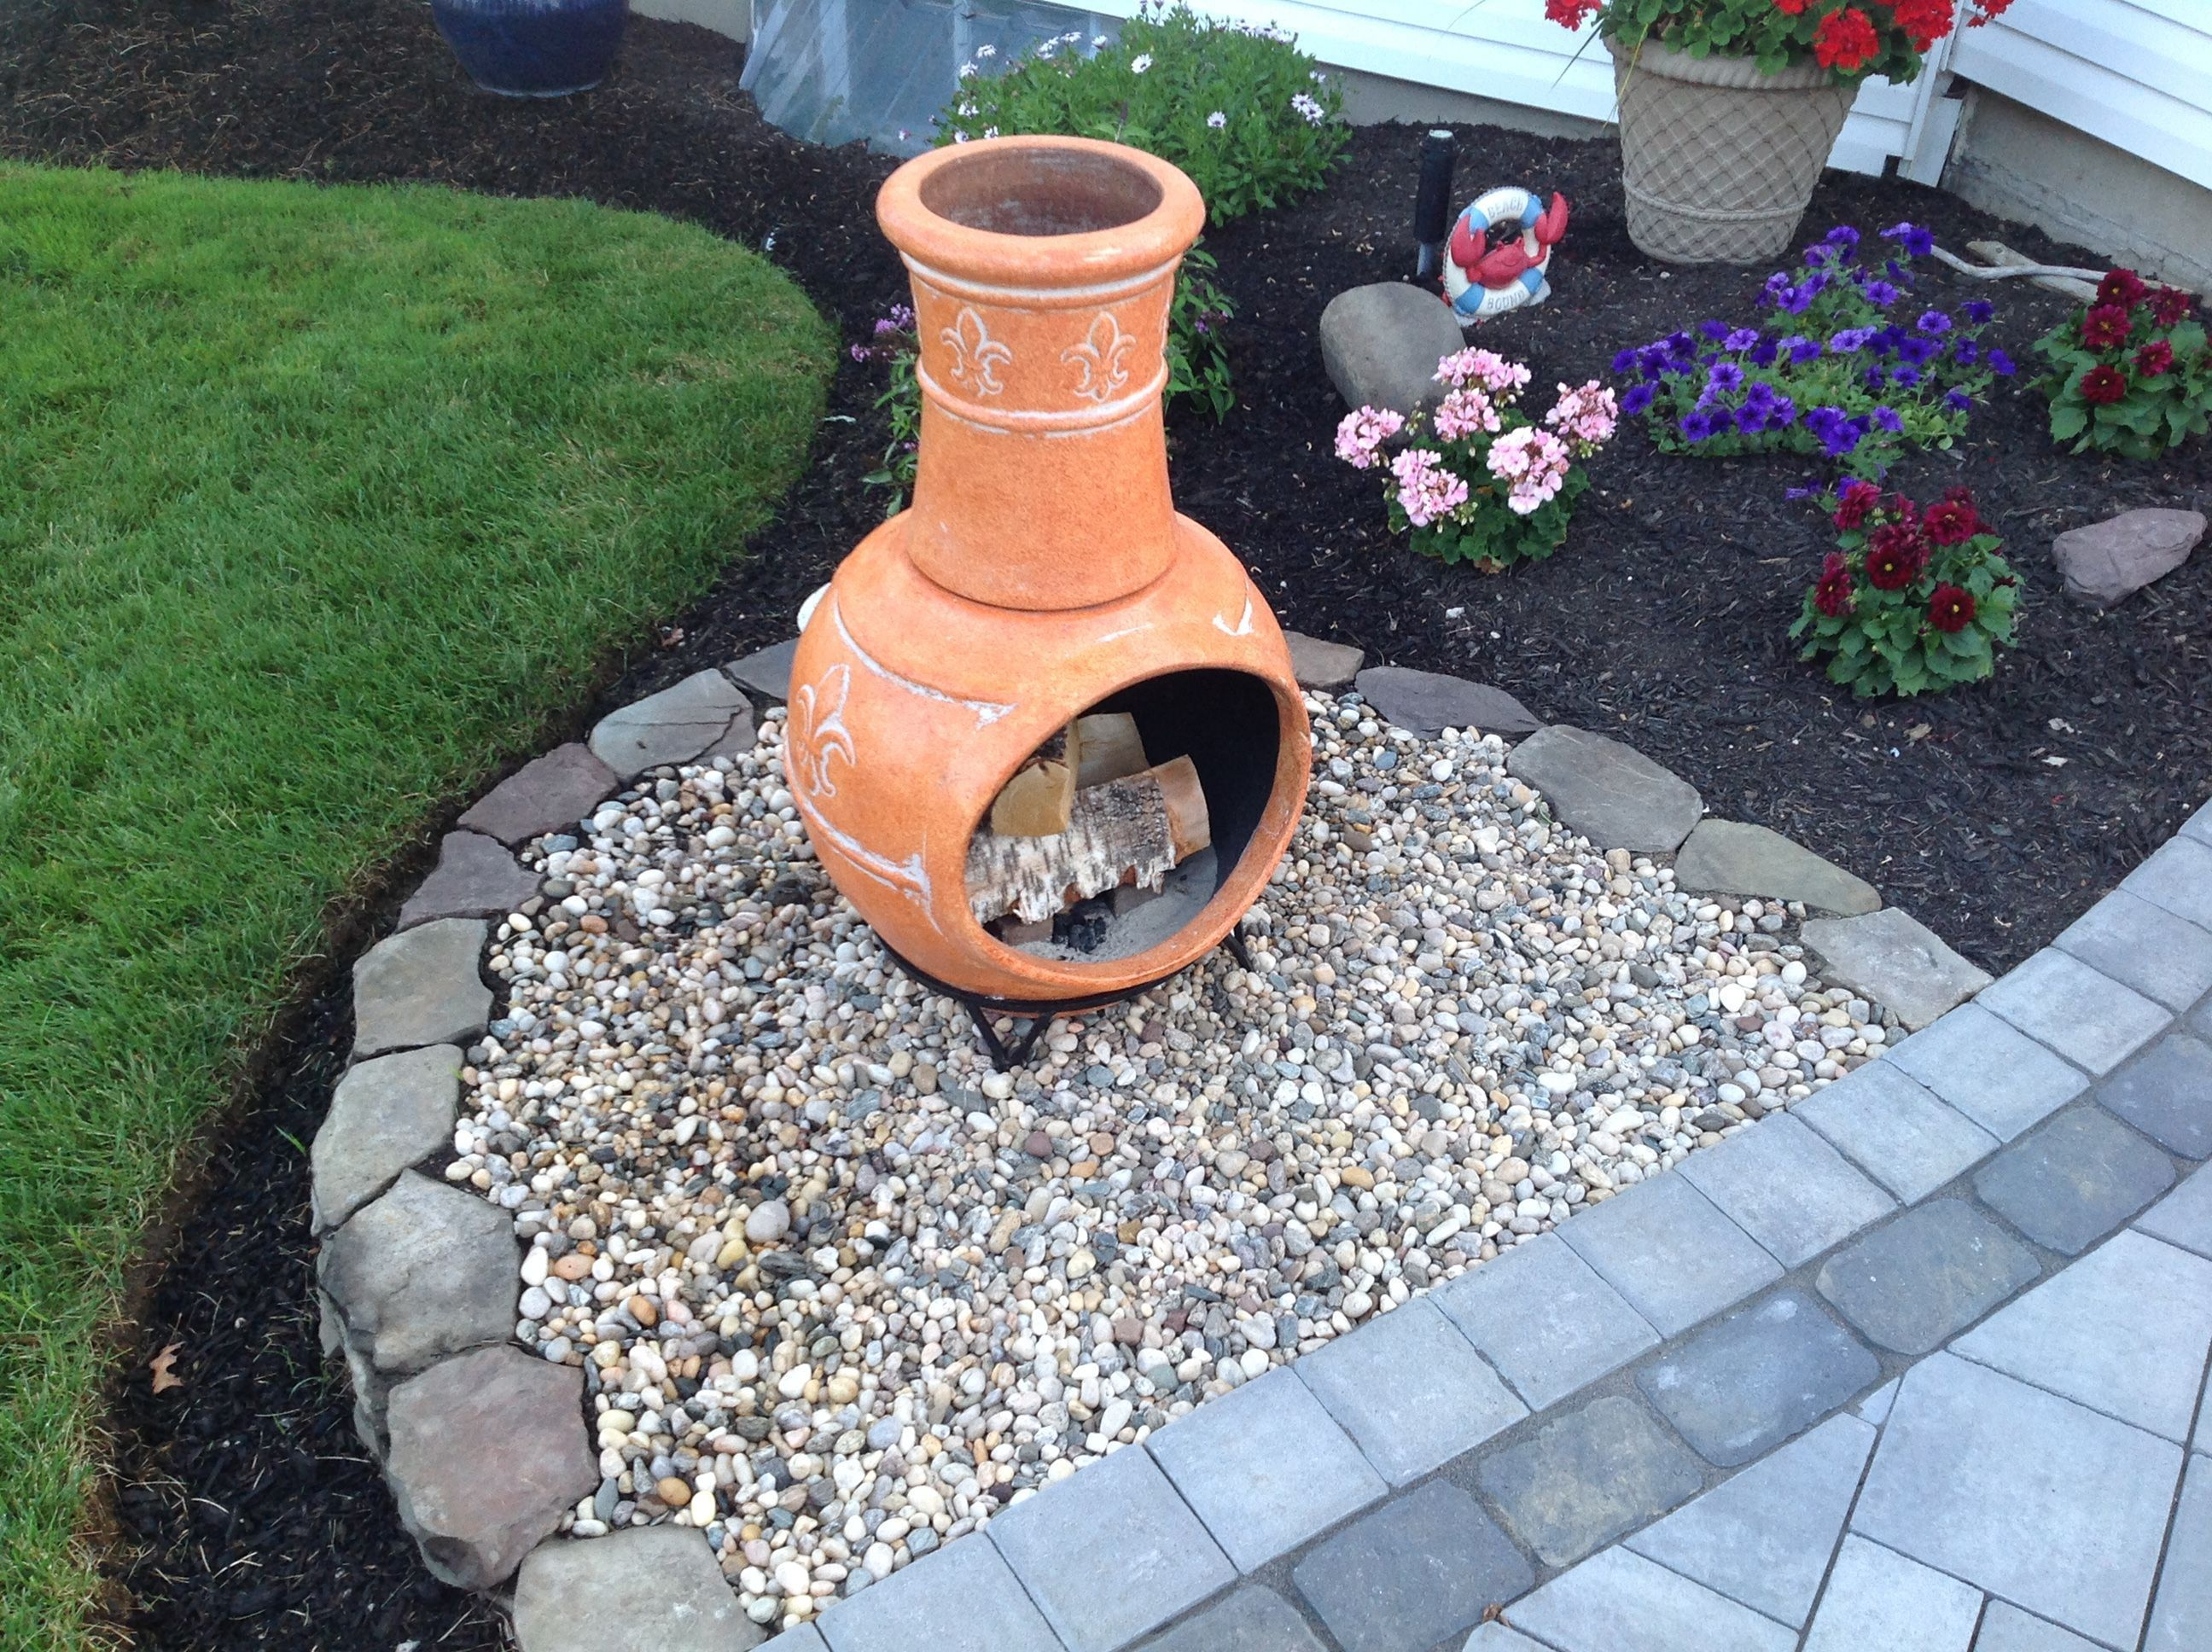 15 Lovely Outdoor Fireplace Ideas For Your Home Outdoor Fire Pit Backyard Chiminea Fire Pit Fire Pit